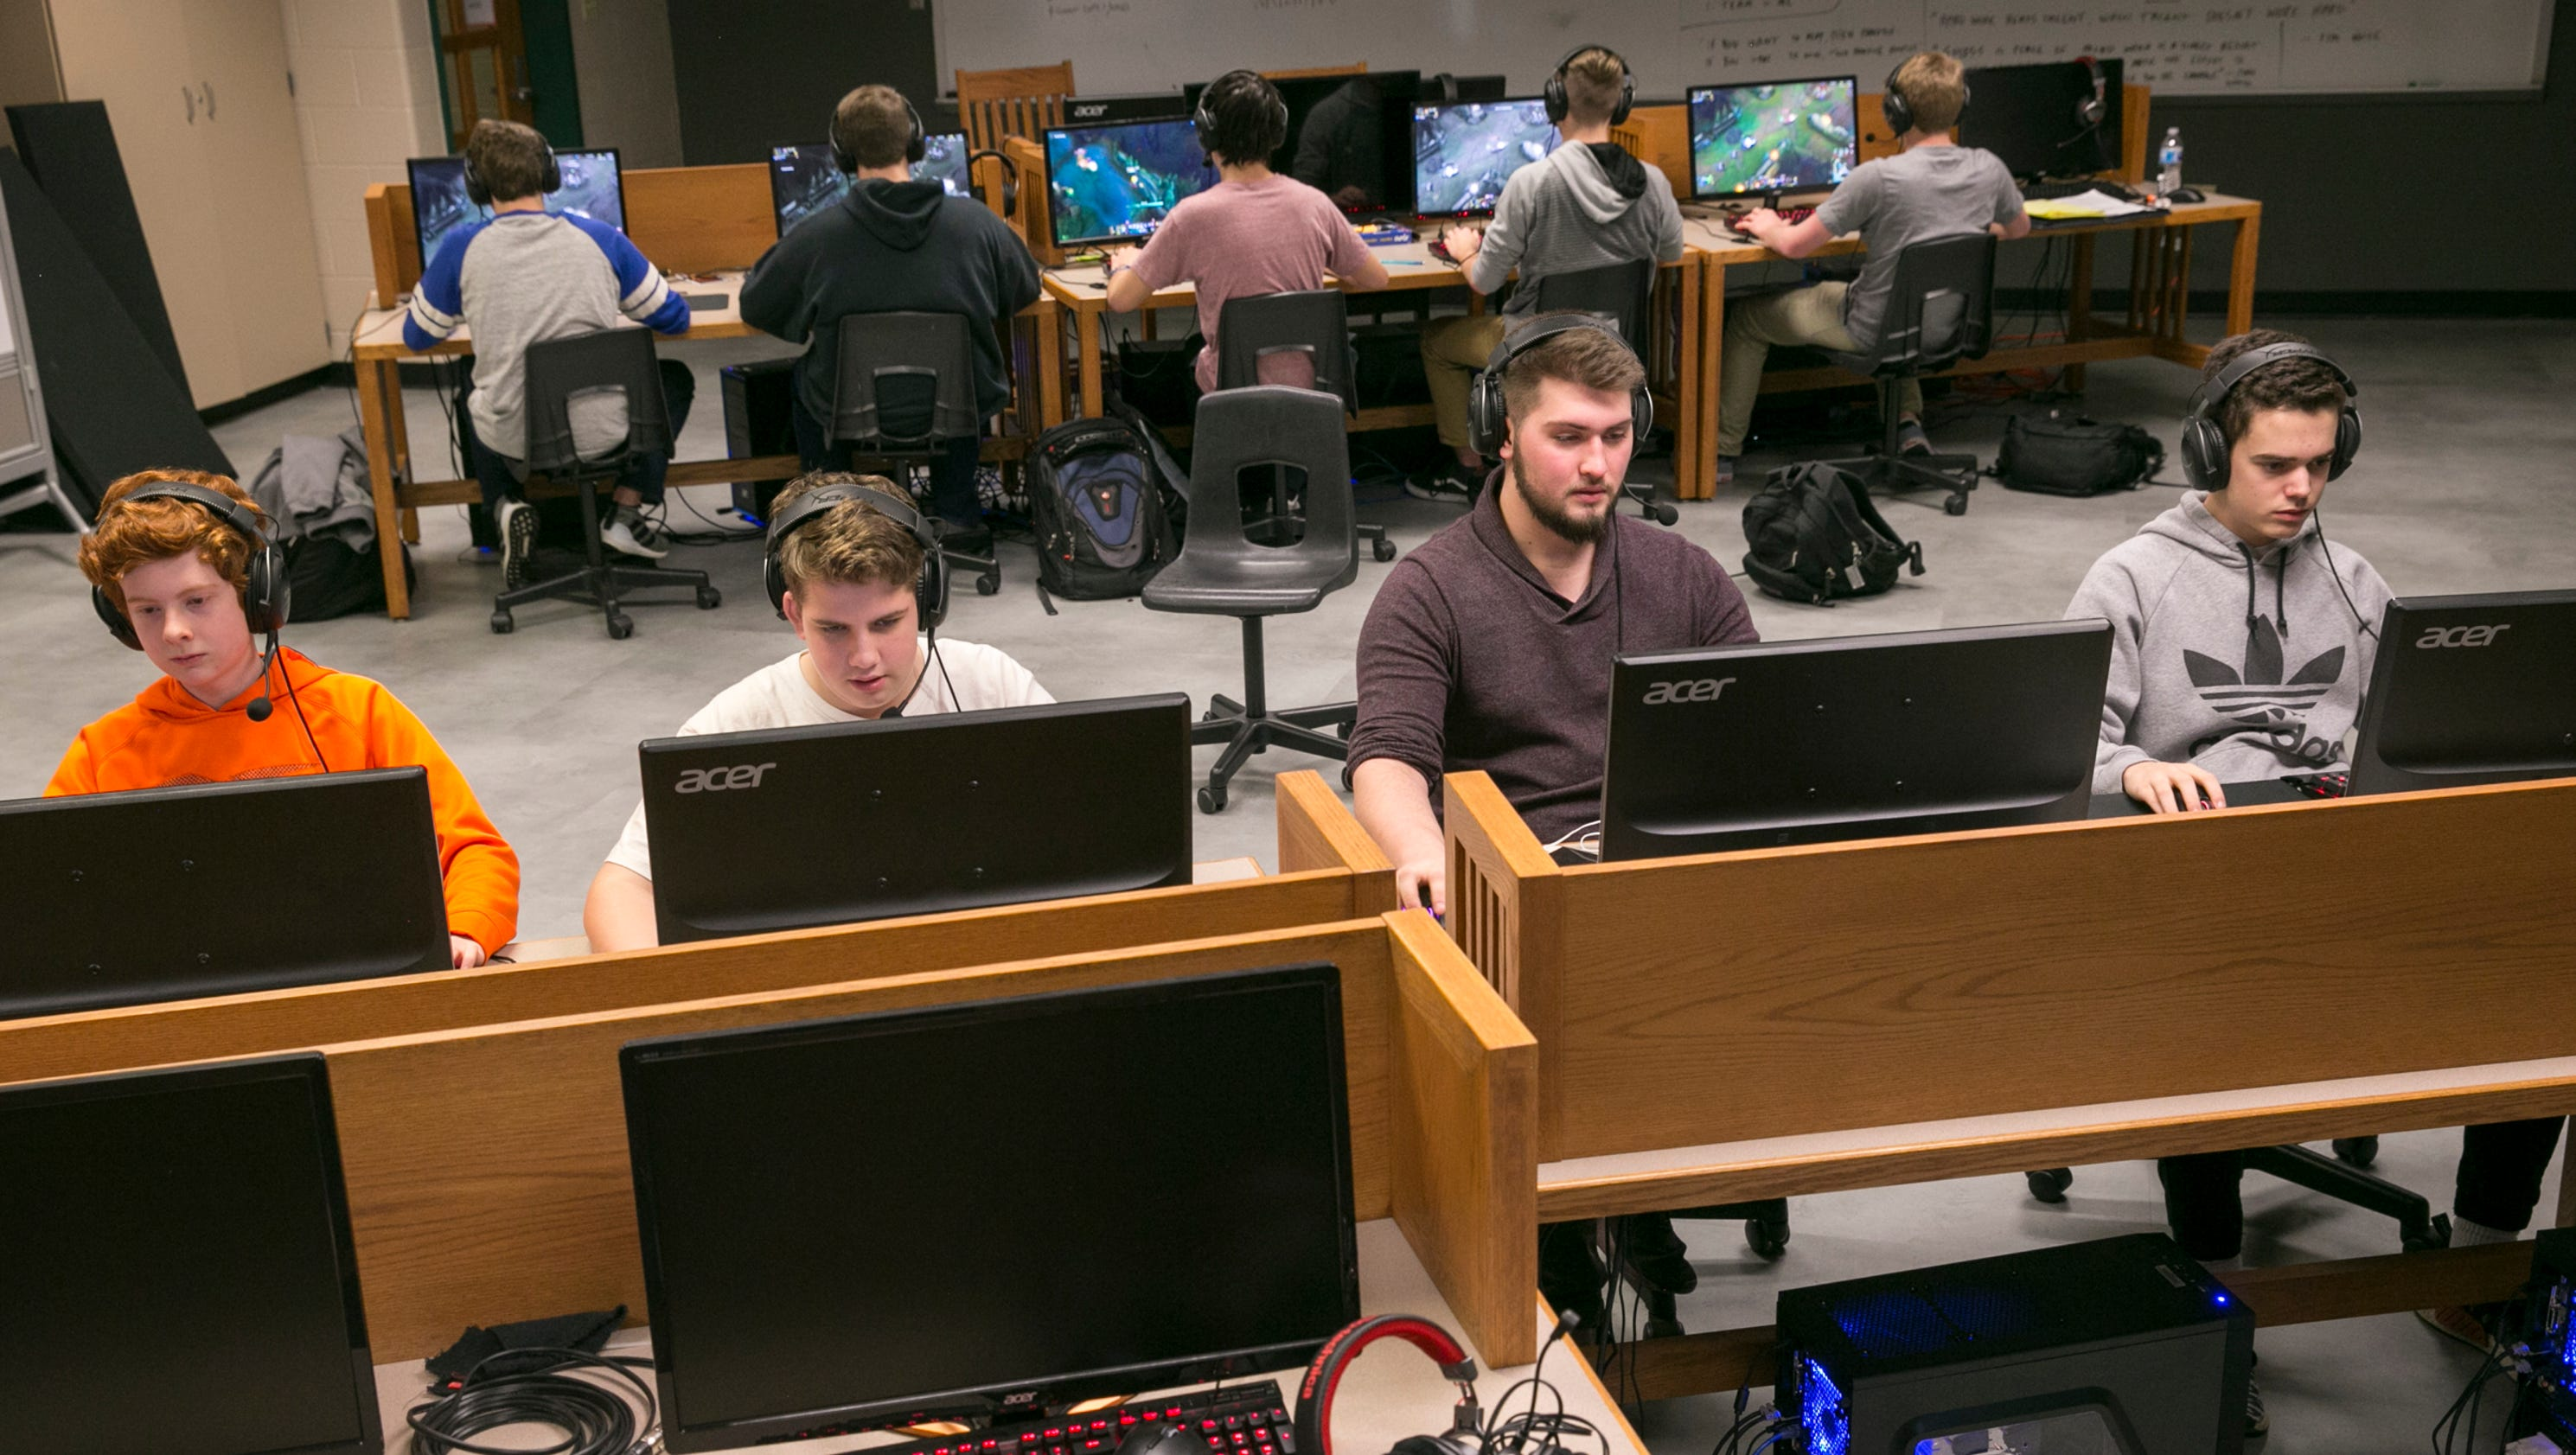 Noblesville students were among the first to get serious about video games. It's paying off.